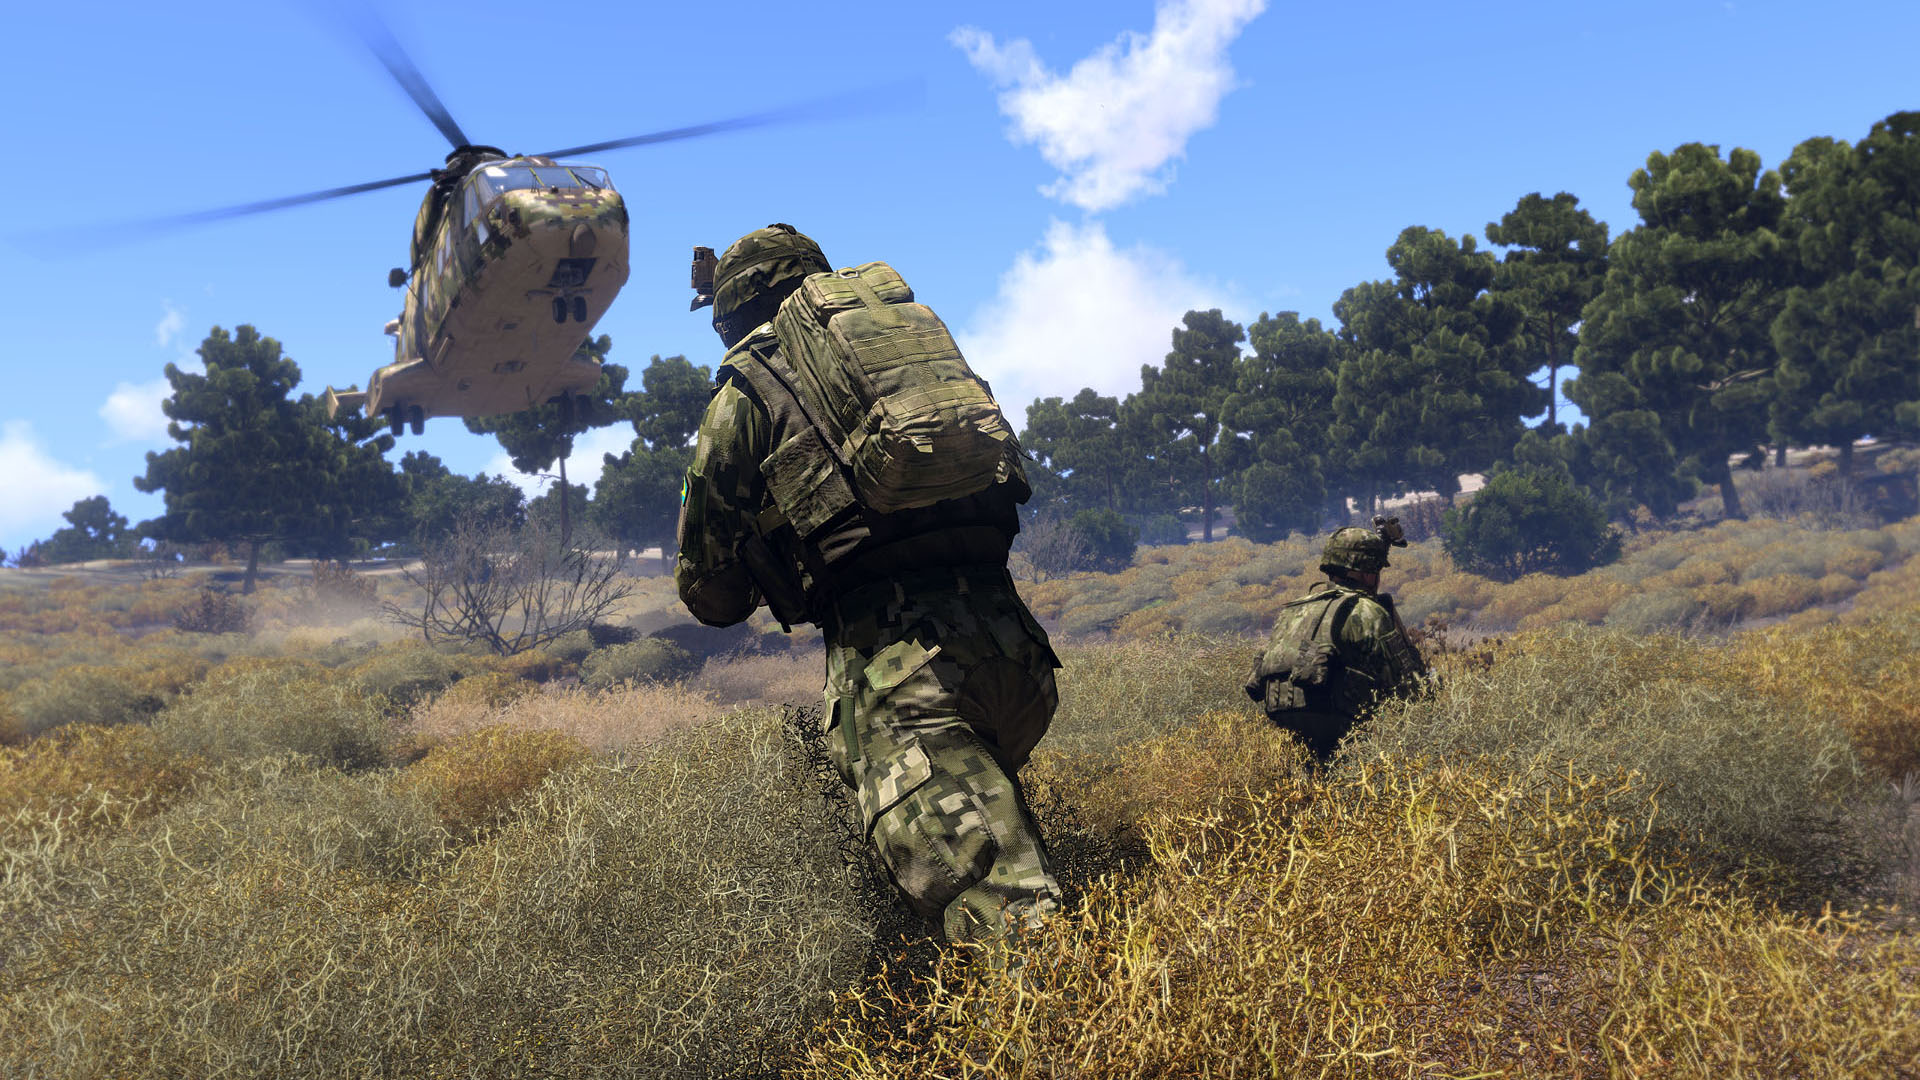 Find the best laptop for Arma 3